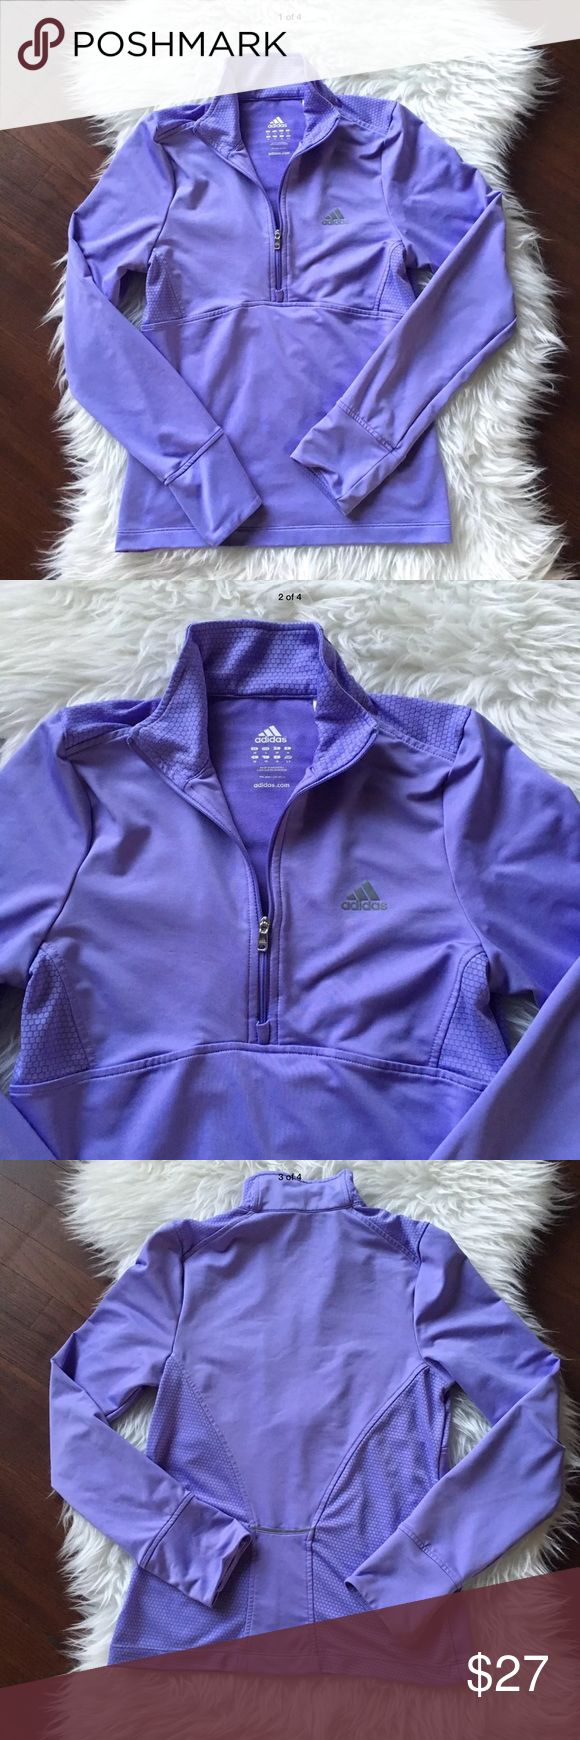 """Adidas Small Activewear Jacket zip Athletic Adidas Womens Small Activewear Jacket Quarter Zip Pullover Athletic Exercise Size small Pit to pit 16"""" Top to bottom 22"""" Polyester blend material  Quarter zip closure Pullover adidas Jackets & Coats"""